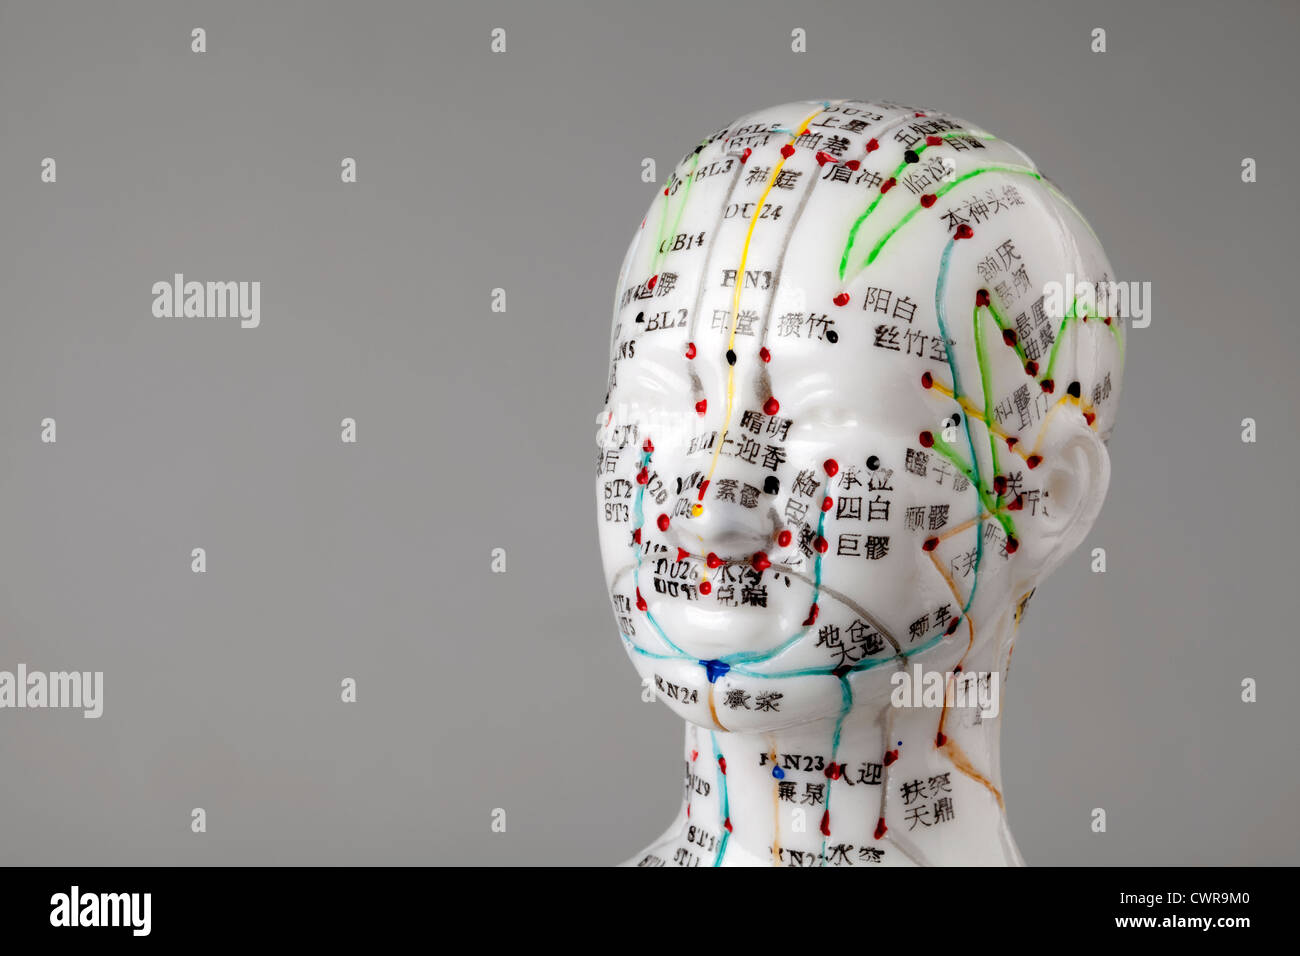 A female model with marked acupuncture points, Chinese characters on the meridians, traditional Chinese medicine - Stock Image